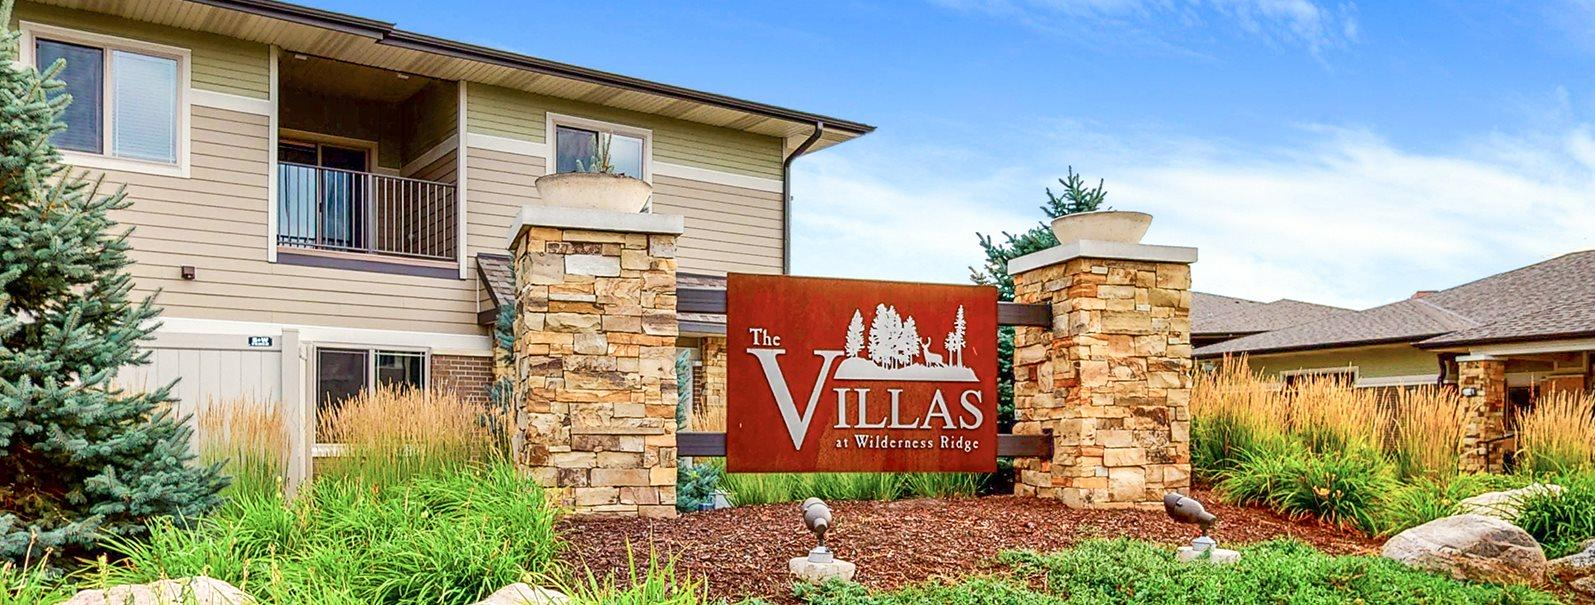 Welcome home to The Villas at Wilderness Ridge